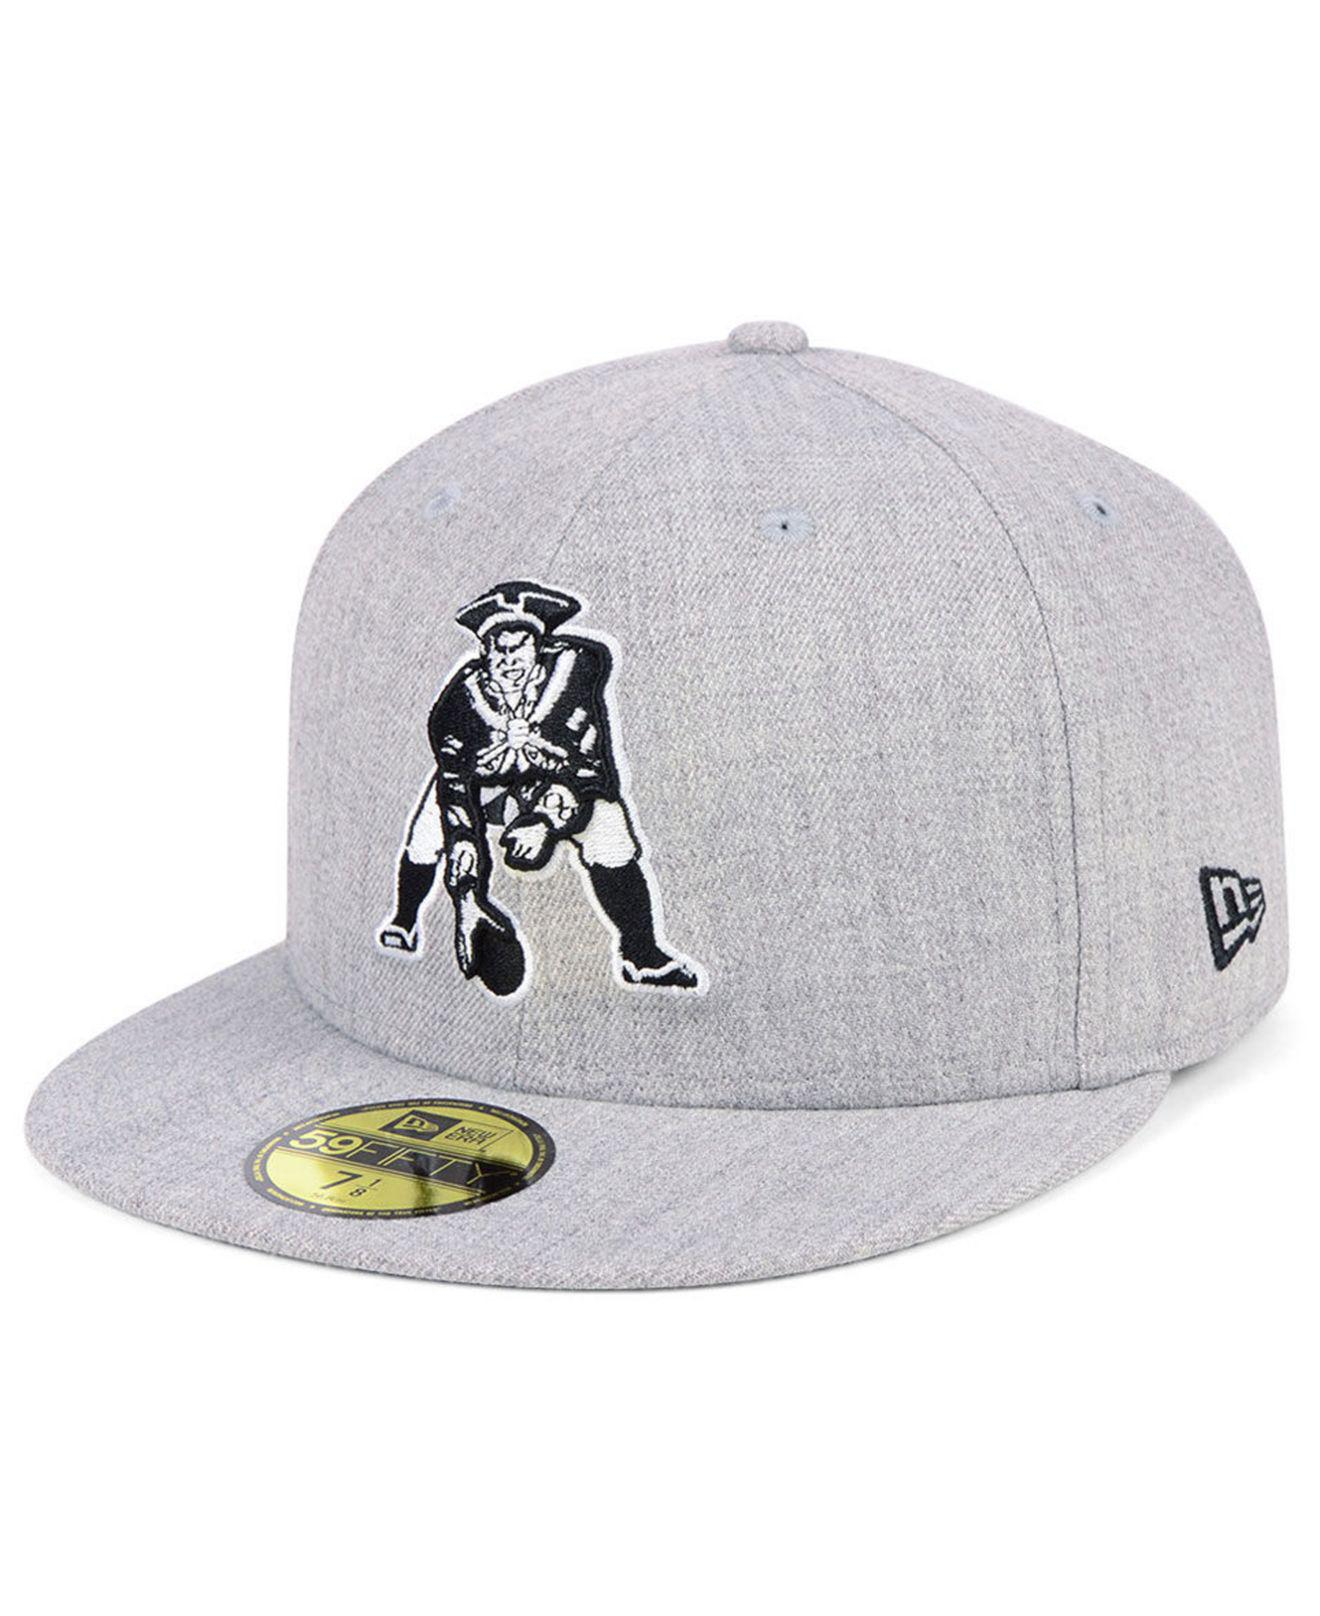 Lyst - KTZ New England Patriots Heather Black White 59fifty Fitted ... 227459a25